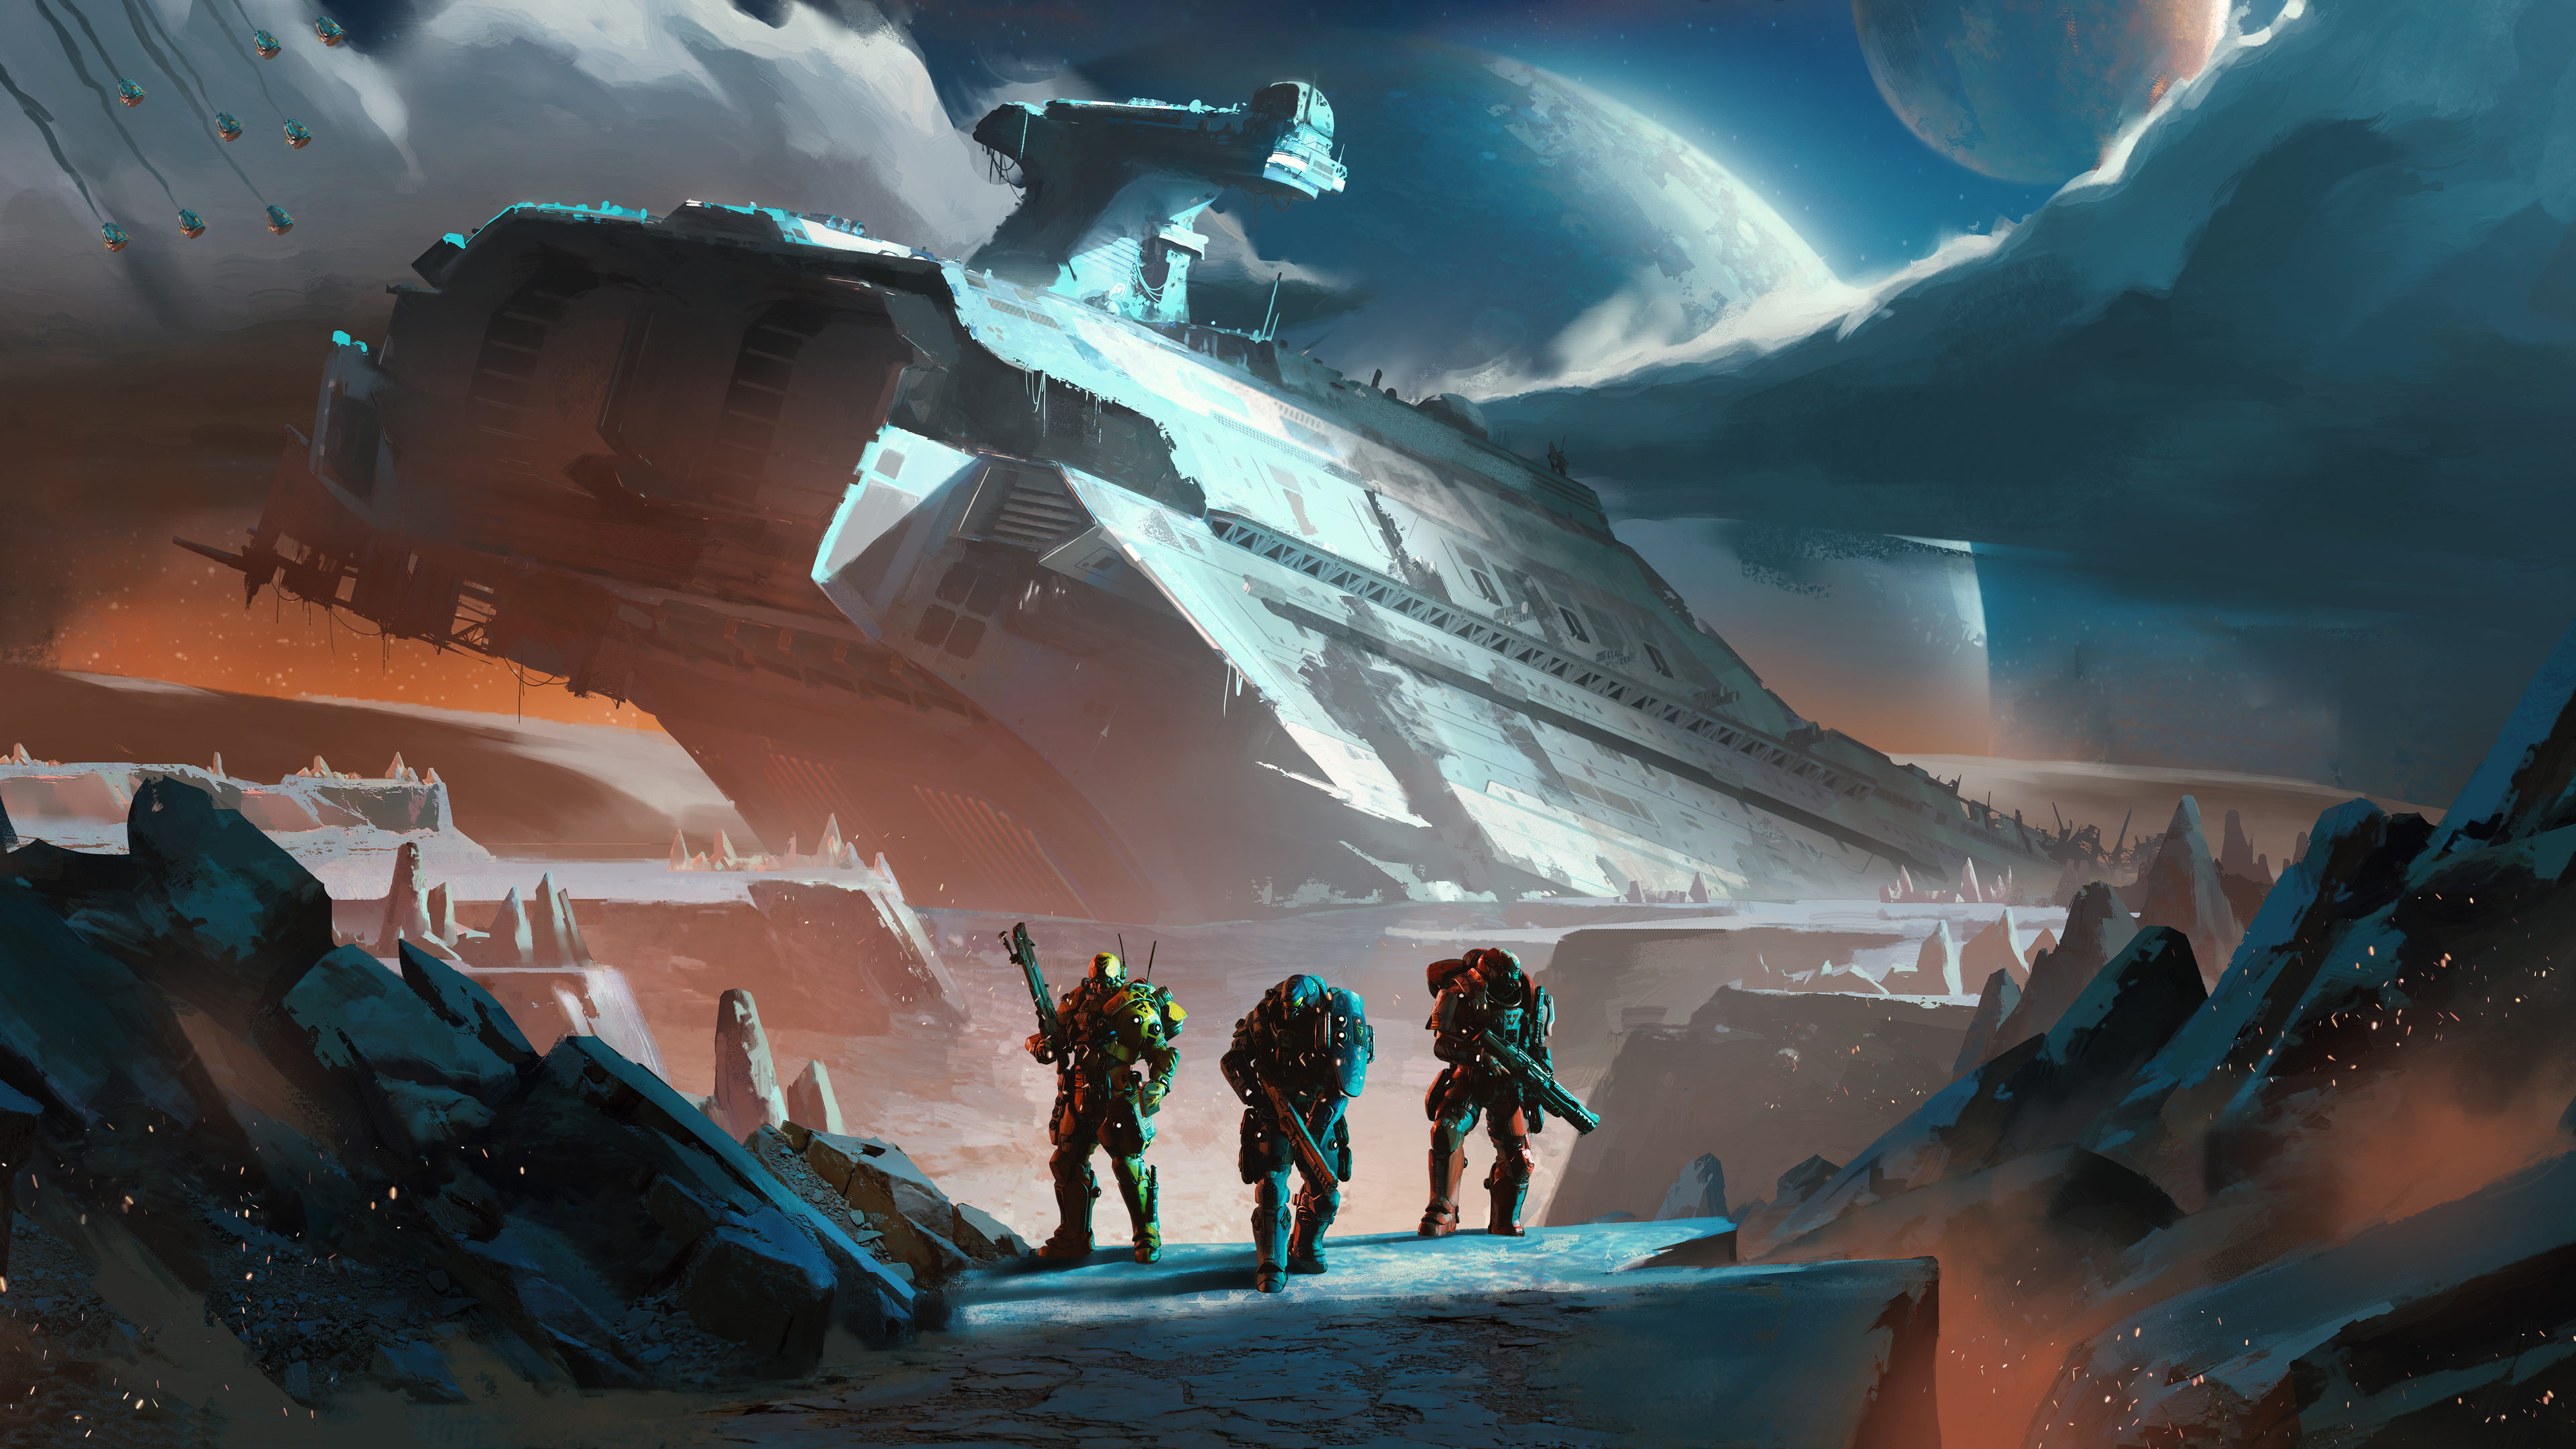 planetside arena 4k 1545589703 - PlanetSide Arena 4k - planetside arena wallpapers, hd-wallpapers, games wallpapers, 5k wallpapers, 4k-wallpapers, 2019 games wallpapers